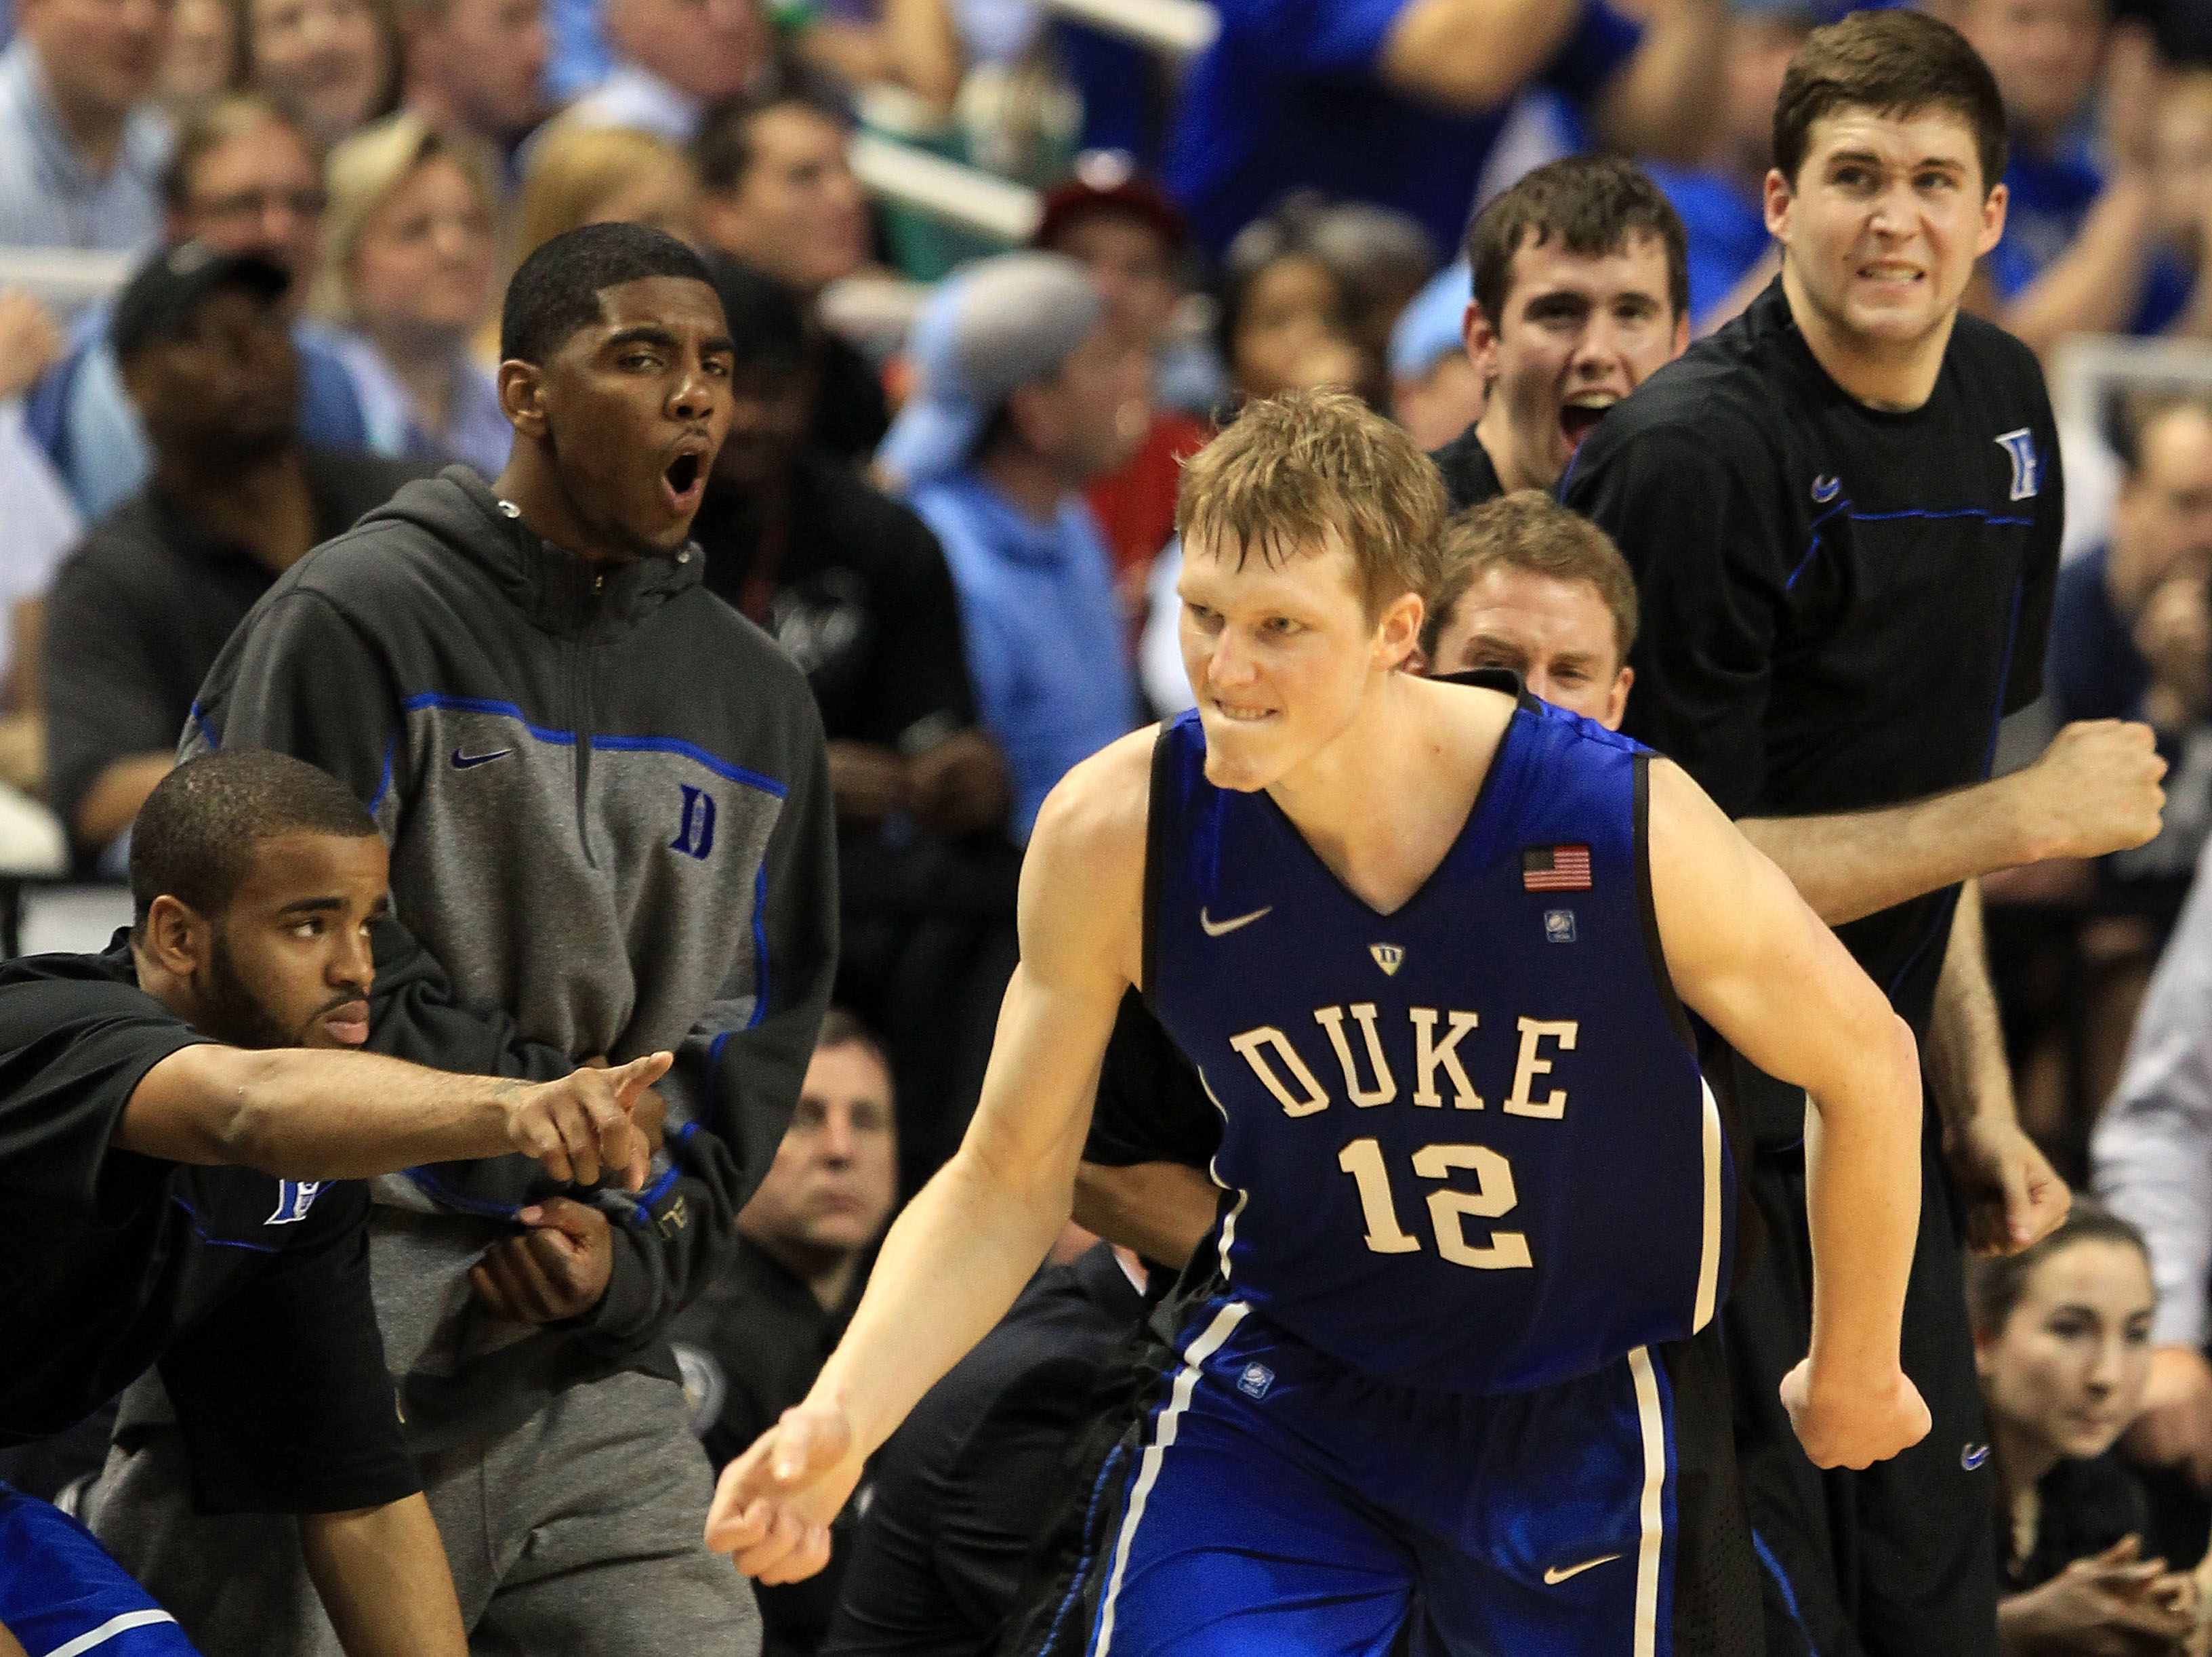 GREENSBORO, NC - MARCH 13:  Kyle Singler #12 of the Duke Blue Devils reacts as teammate Kyrie Irving #1 and the bench cheer him on during the second half of the game against the North Carolina Tar Heels in the championship game of the 2011 ACC men's baske